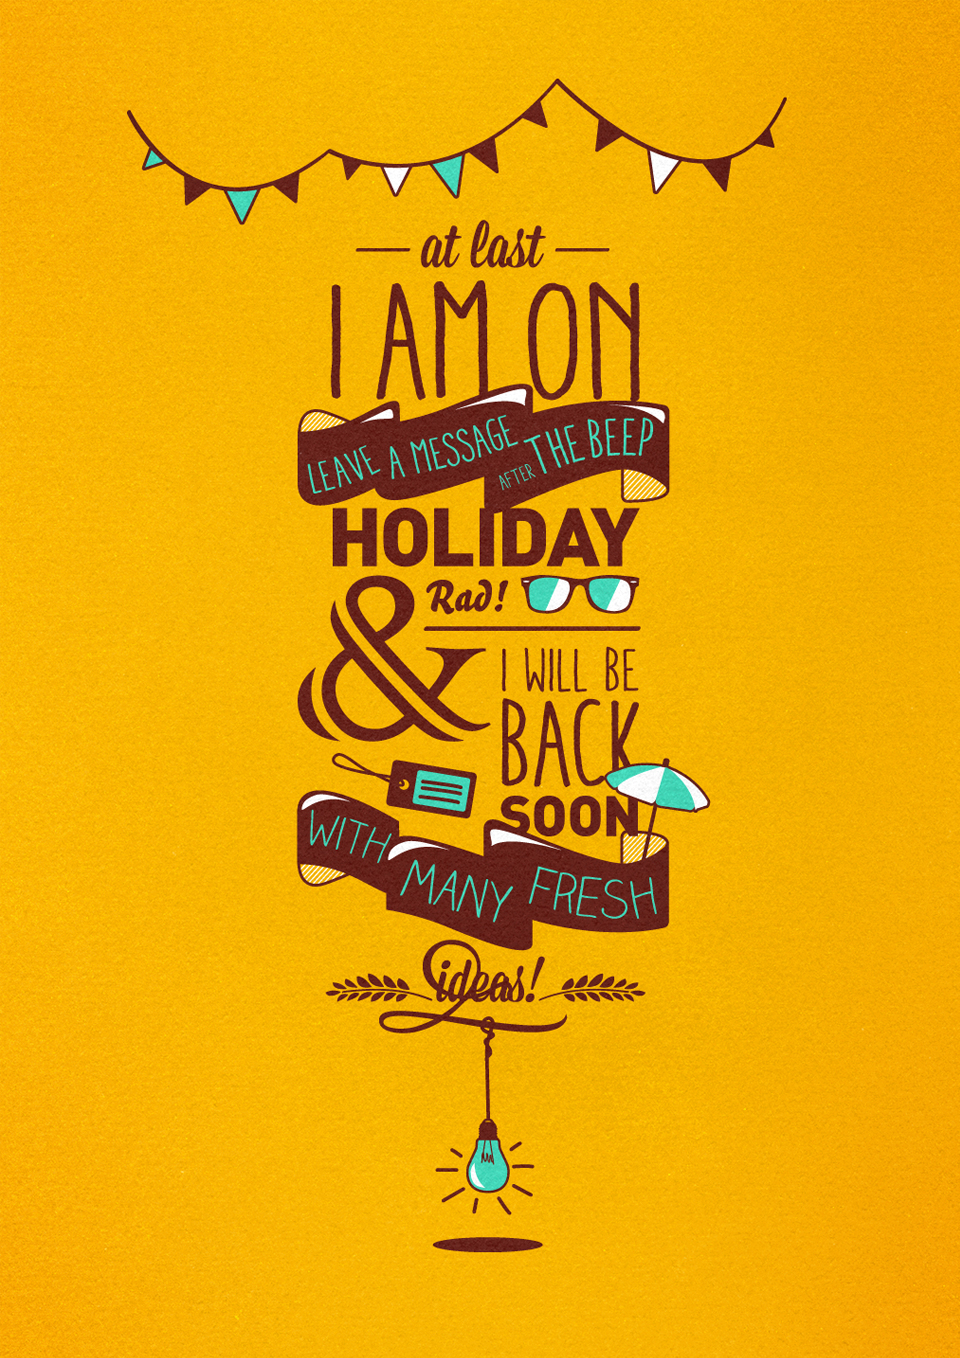 marie-brun-the-seventeenth-illustration-poster-fonts-holiday-yellow.jpg